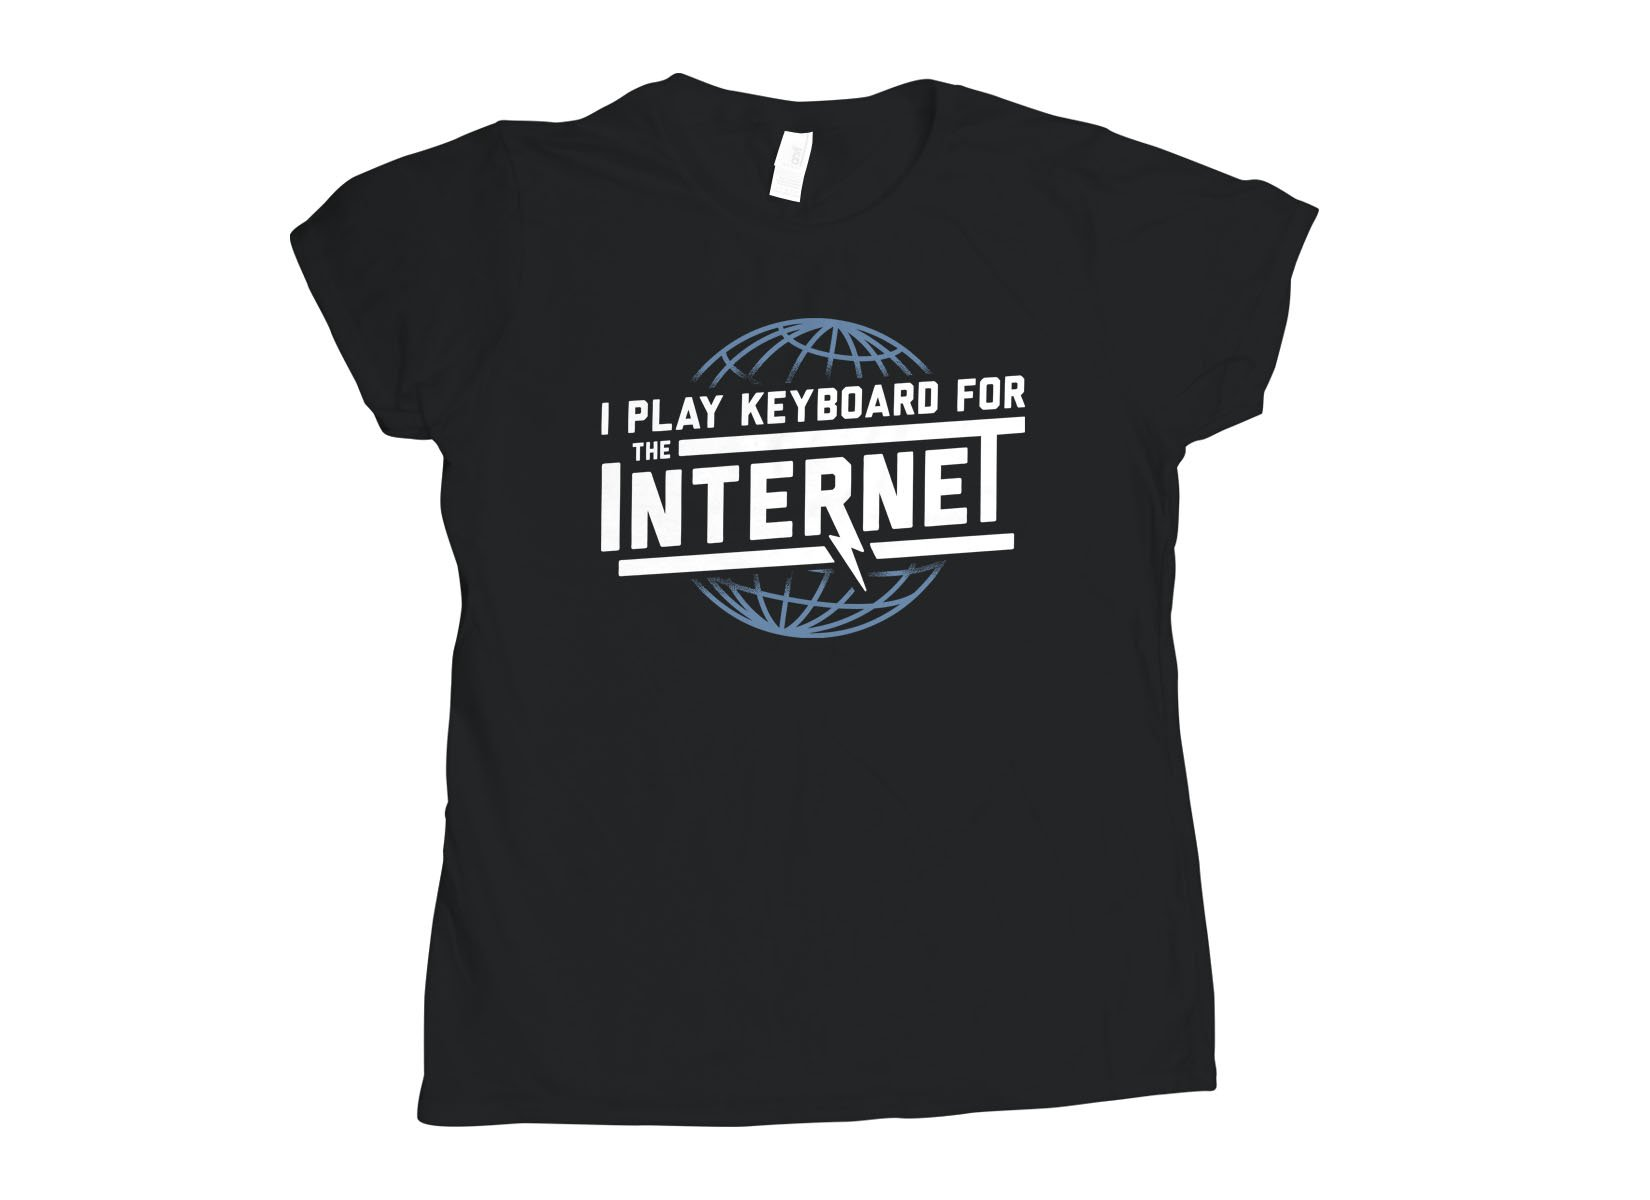 I Play Keyboard For The Internet on Womens T-Shirt